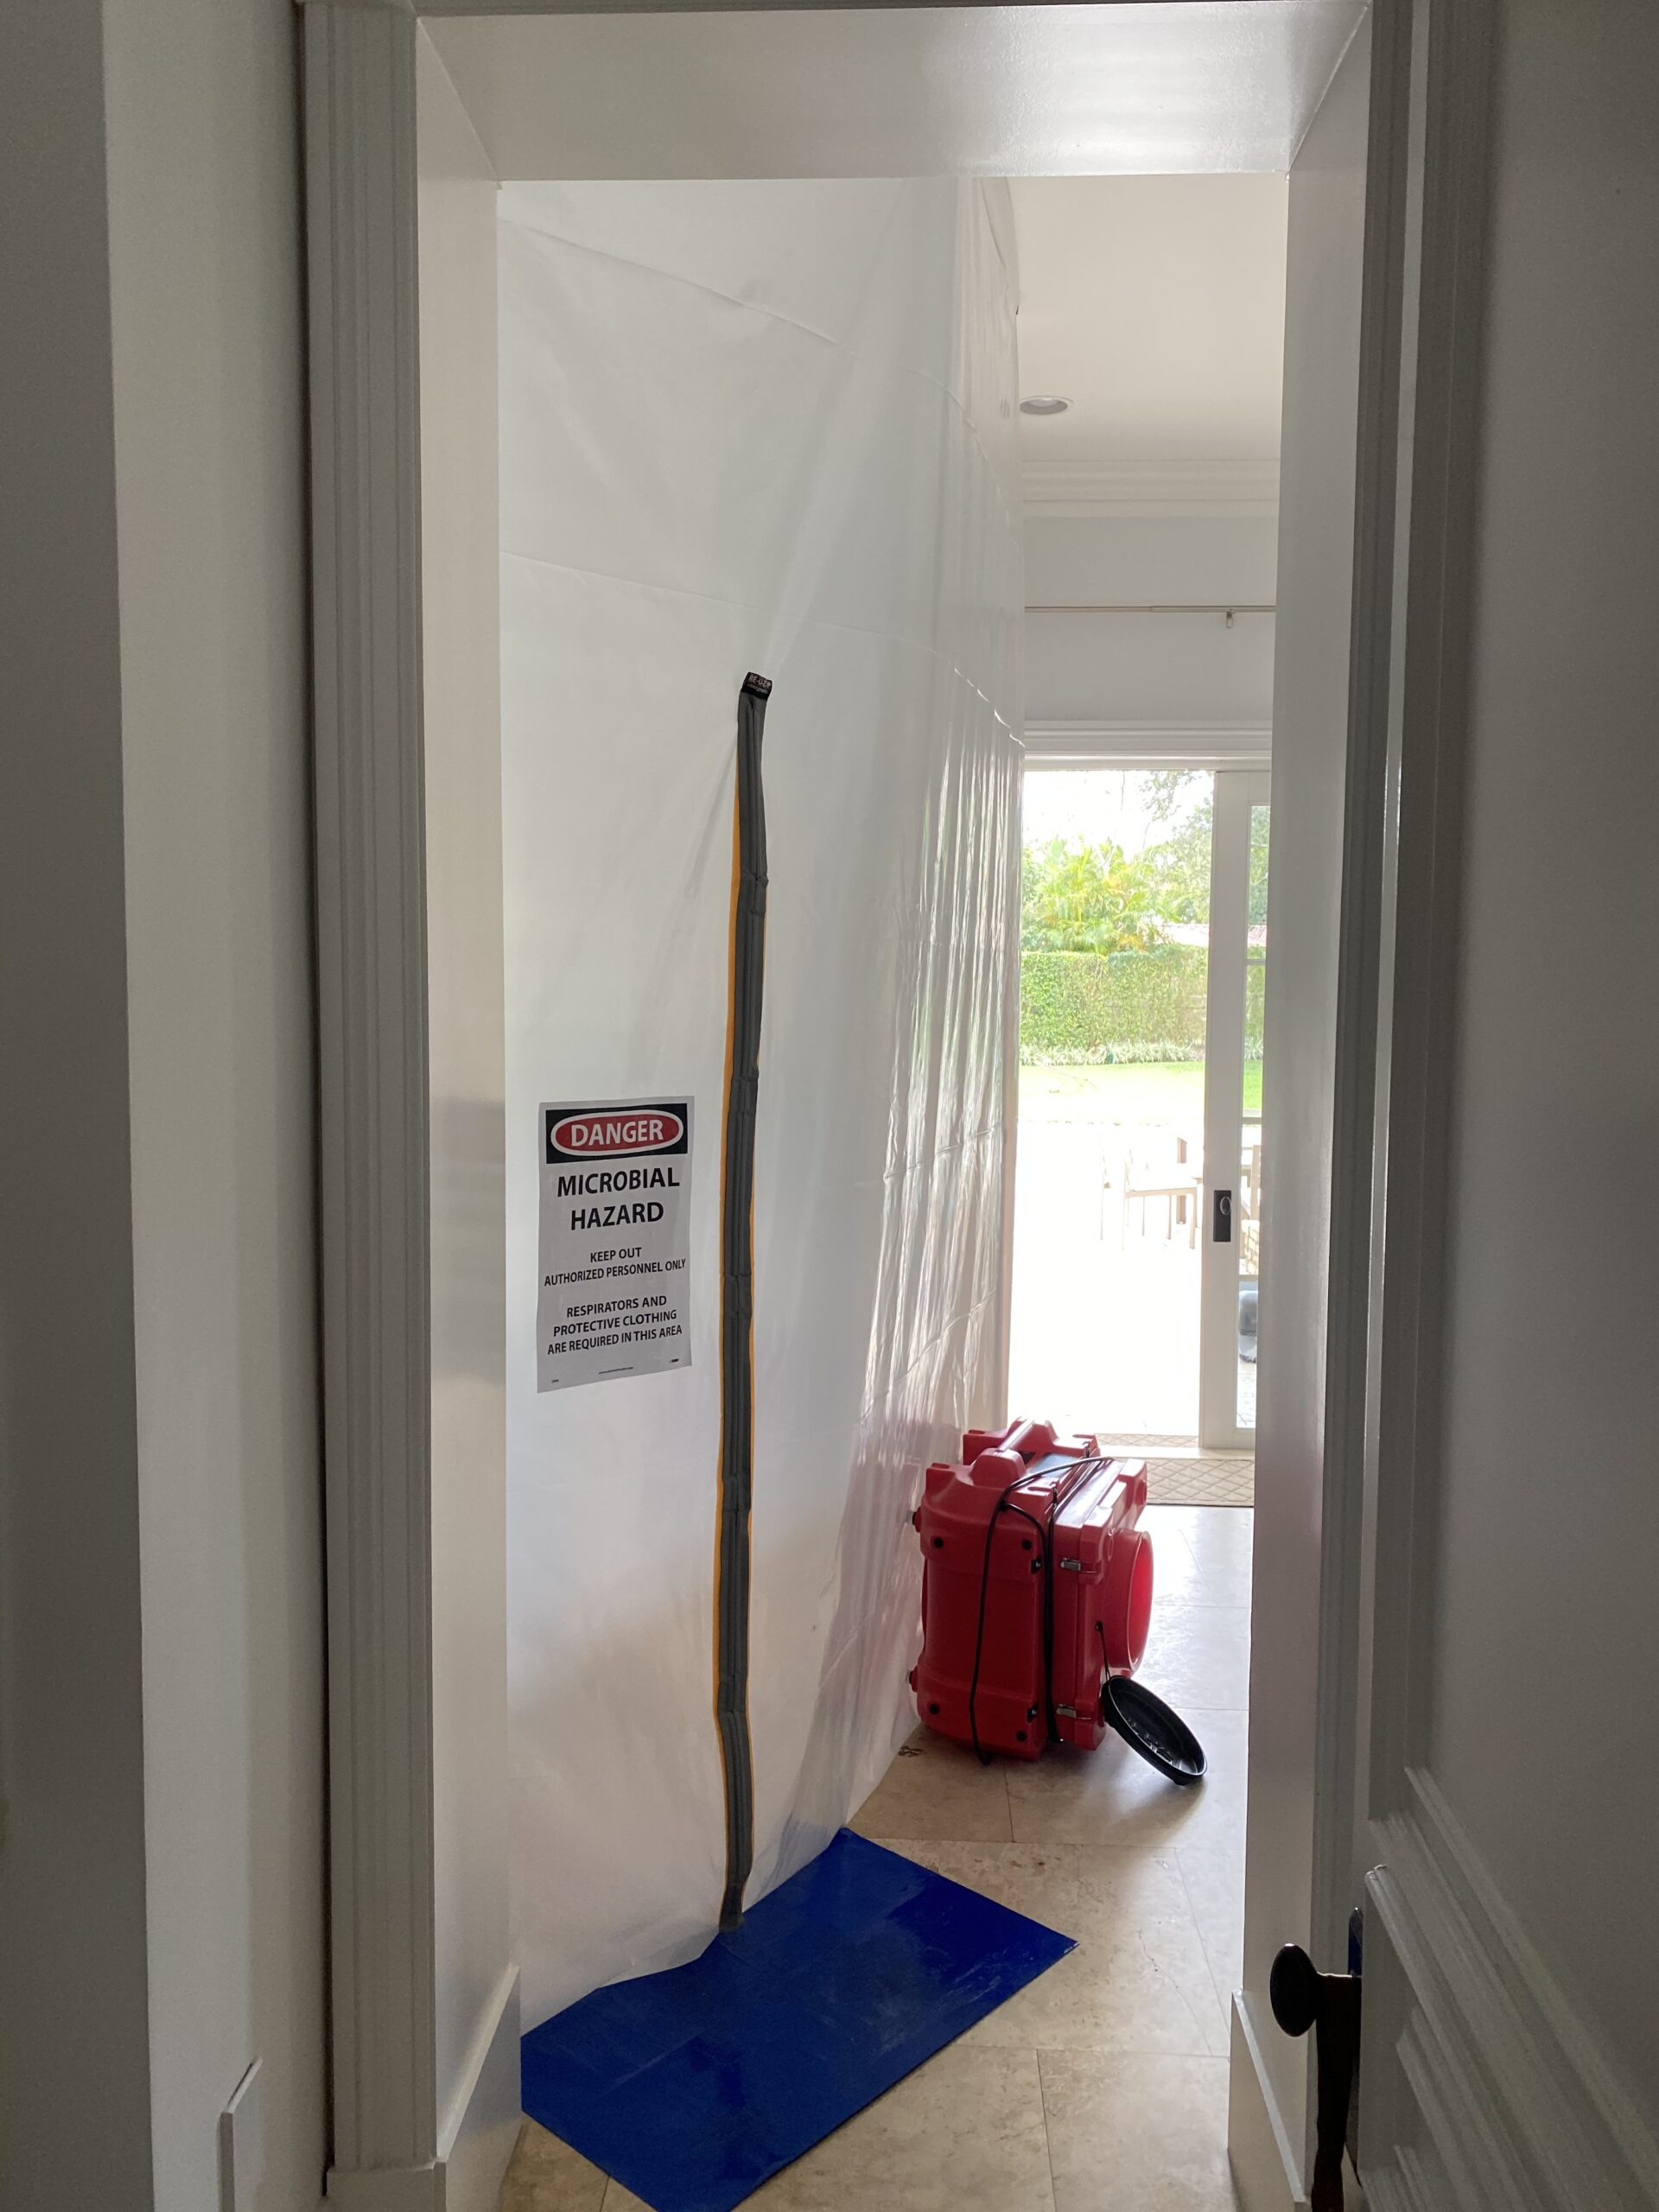 Zipwall Water Damage Emergency Service Containment leak detection